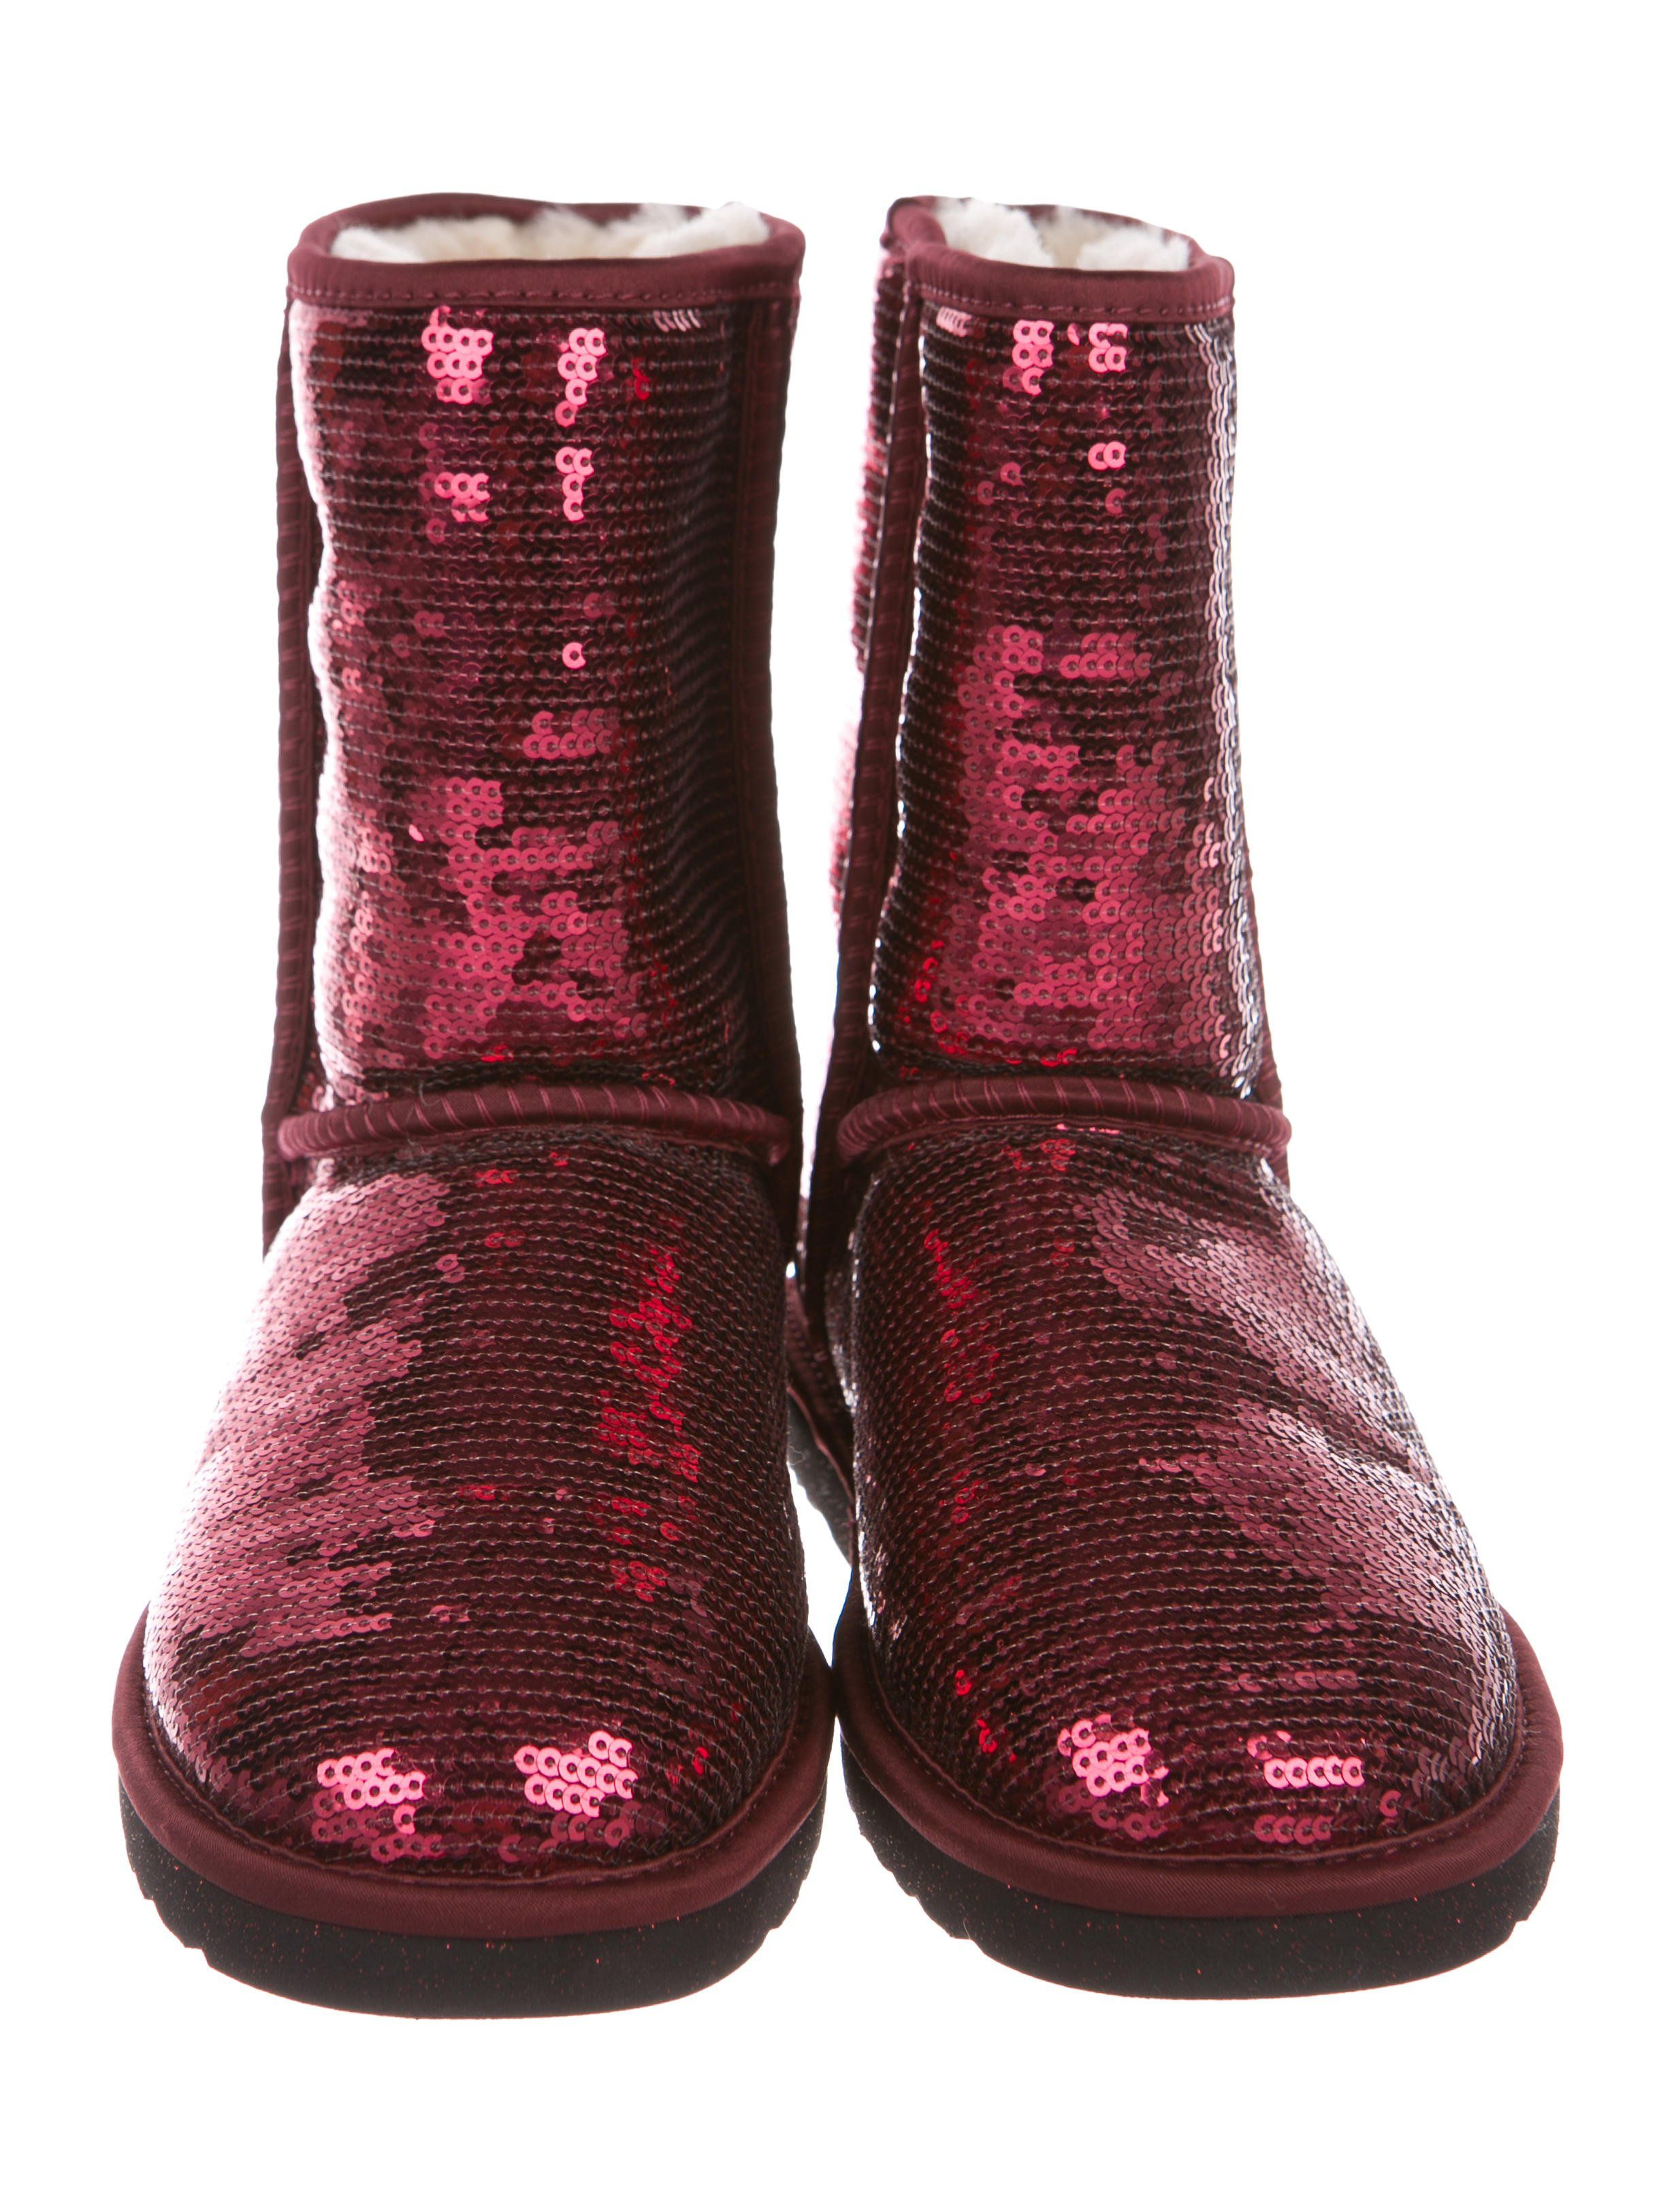 3734f9cef11 Sequin Classic Short Boots w/ Tags | Steak | Boots, Uggs, Short boots